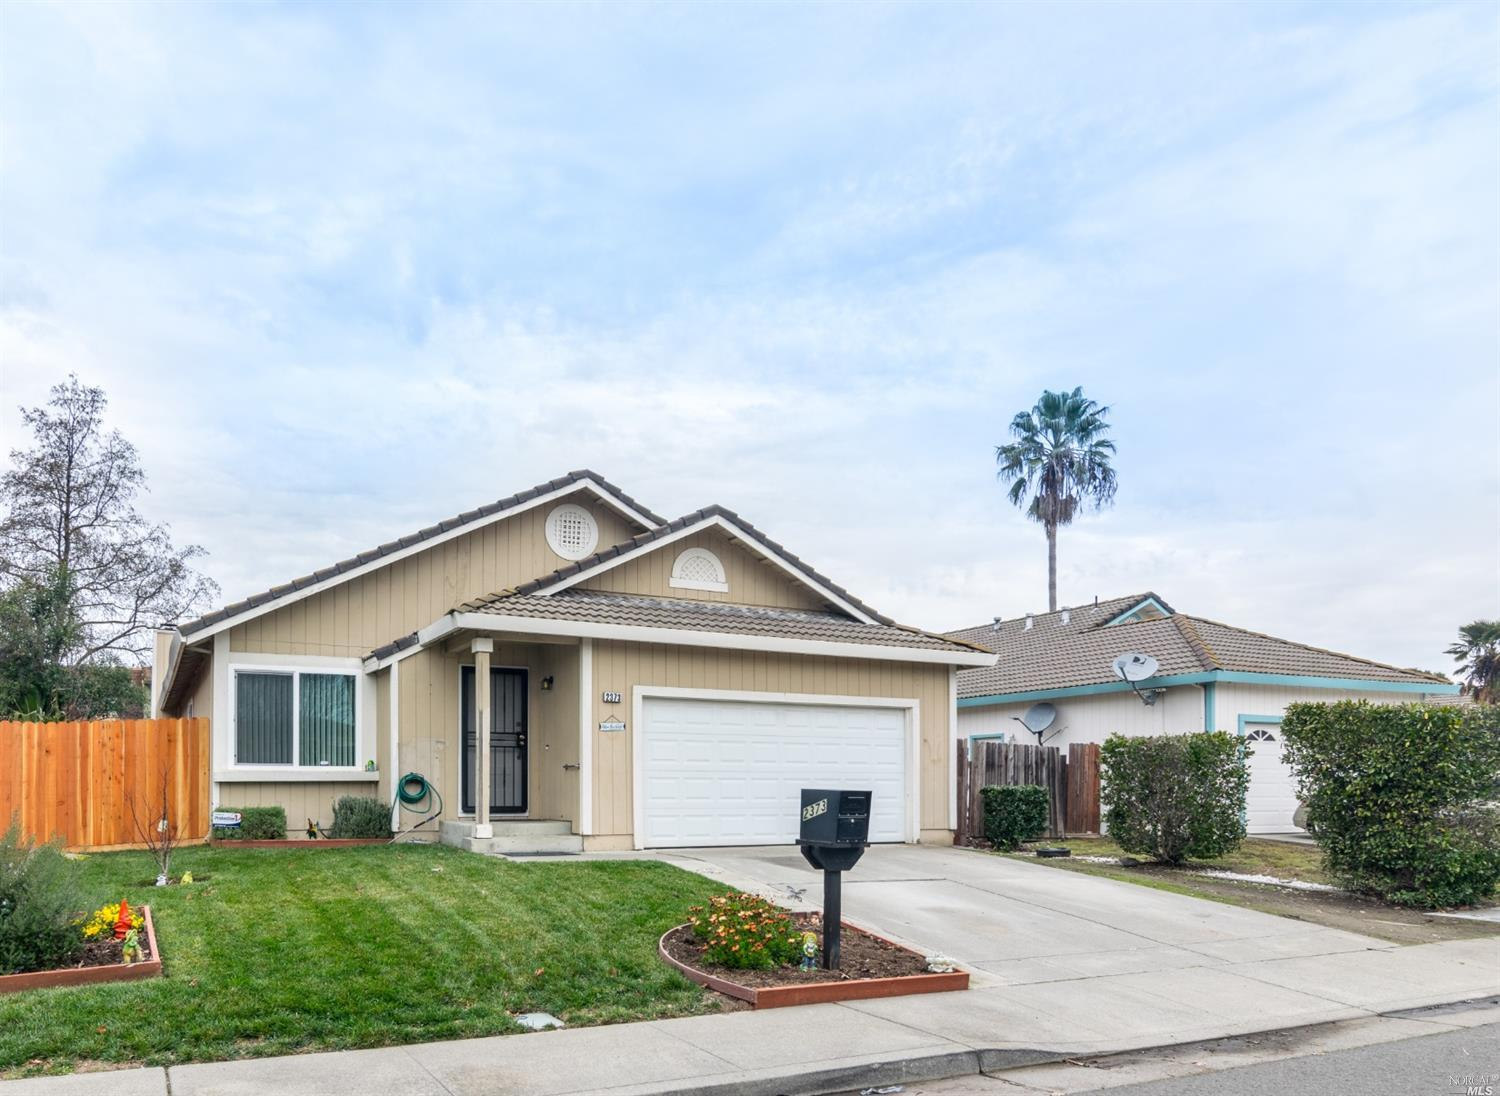 Great single story home with updated kitchen. Stainless steel appliances and slab granite counters.